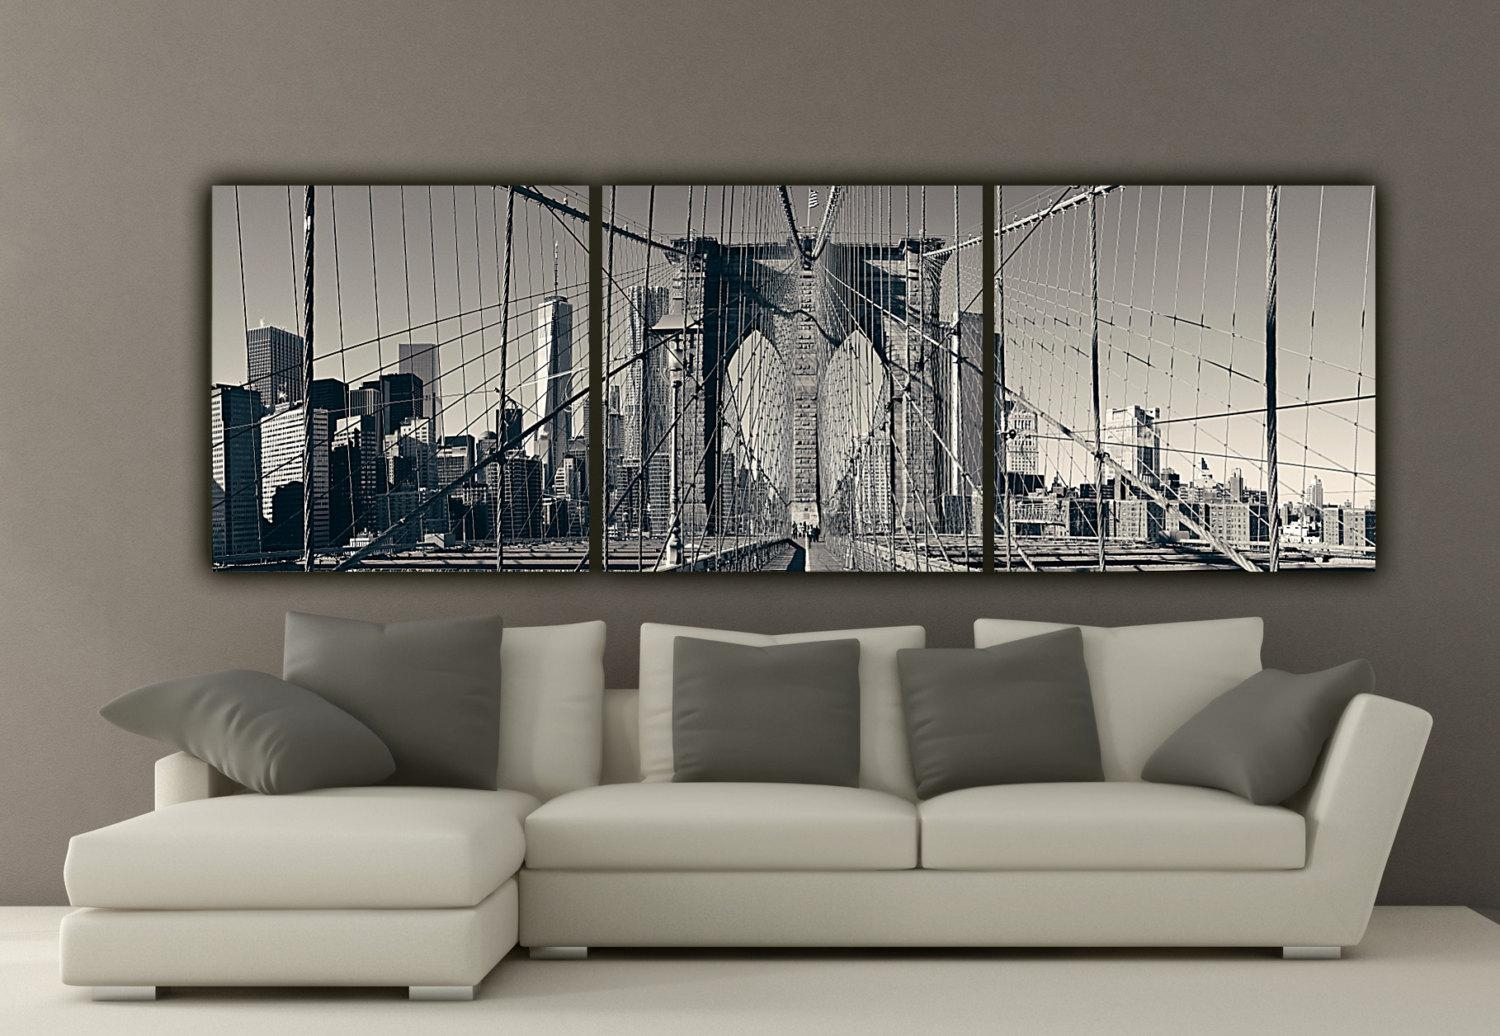 New York Brooklyn Bridge Canvas Wall Art Black And White New With Regard To Big Canvas Wall Art (Image 13 of 21)